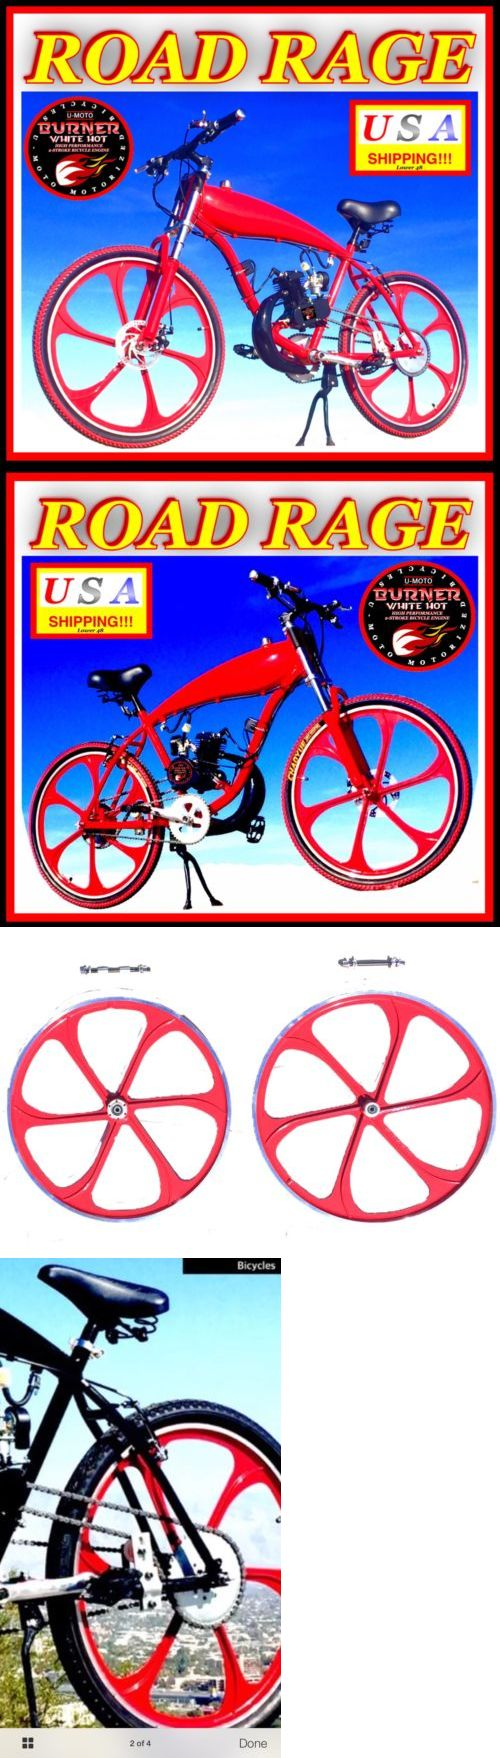 Gas Scooters 75211: Ultra Diy 2-Stroke 66Cc 80Cc Motorized Bicycle Kit With 26 Red Gas Tank Bike -> BUY IT NOW ONLY: $699.99 on eBay!